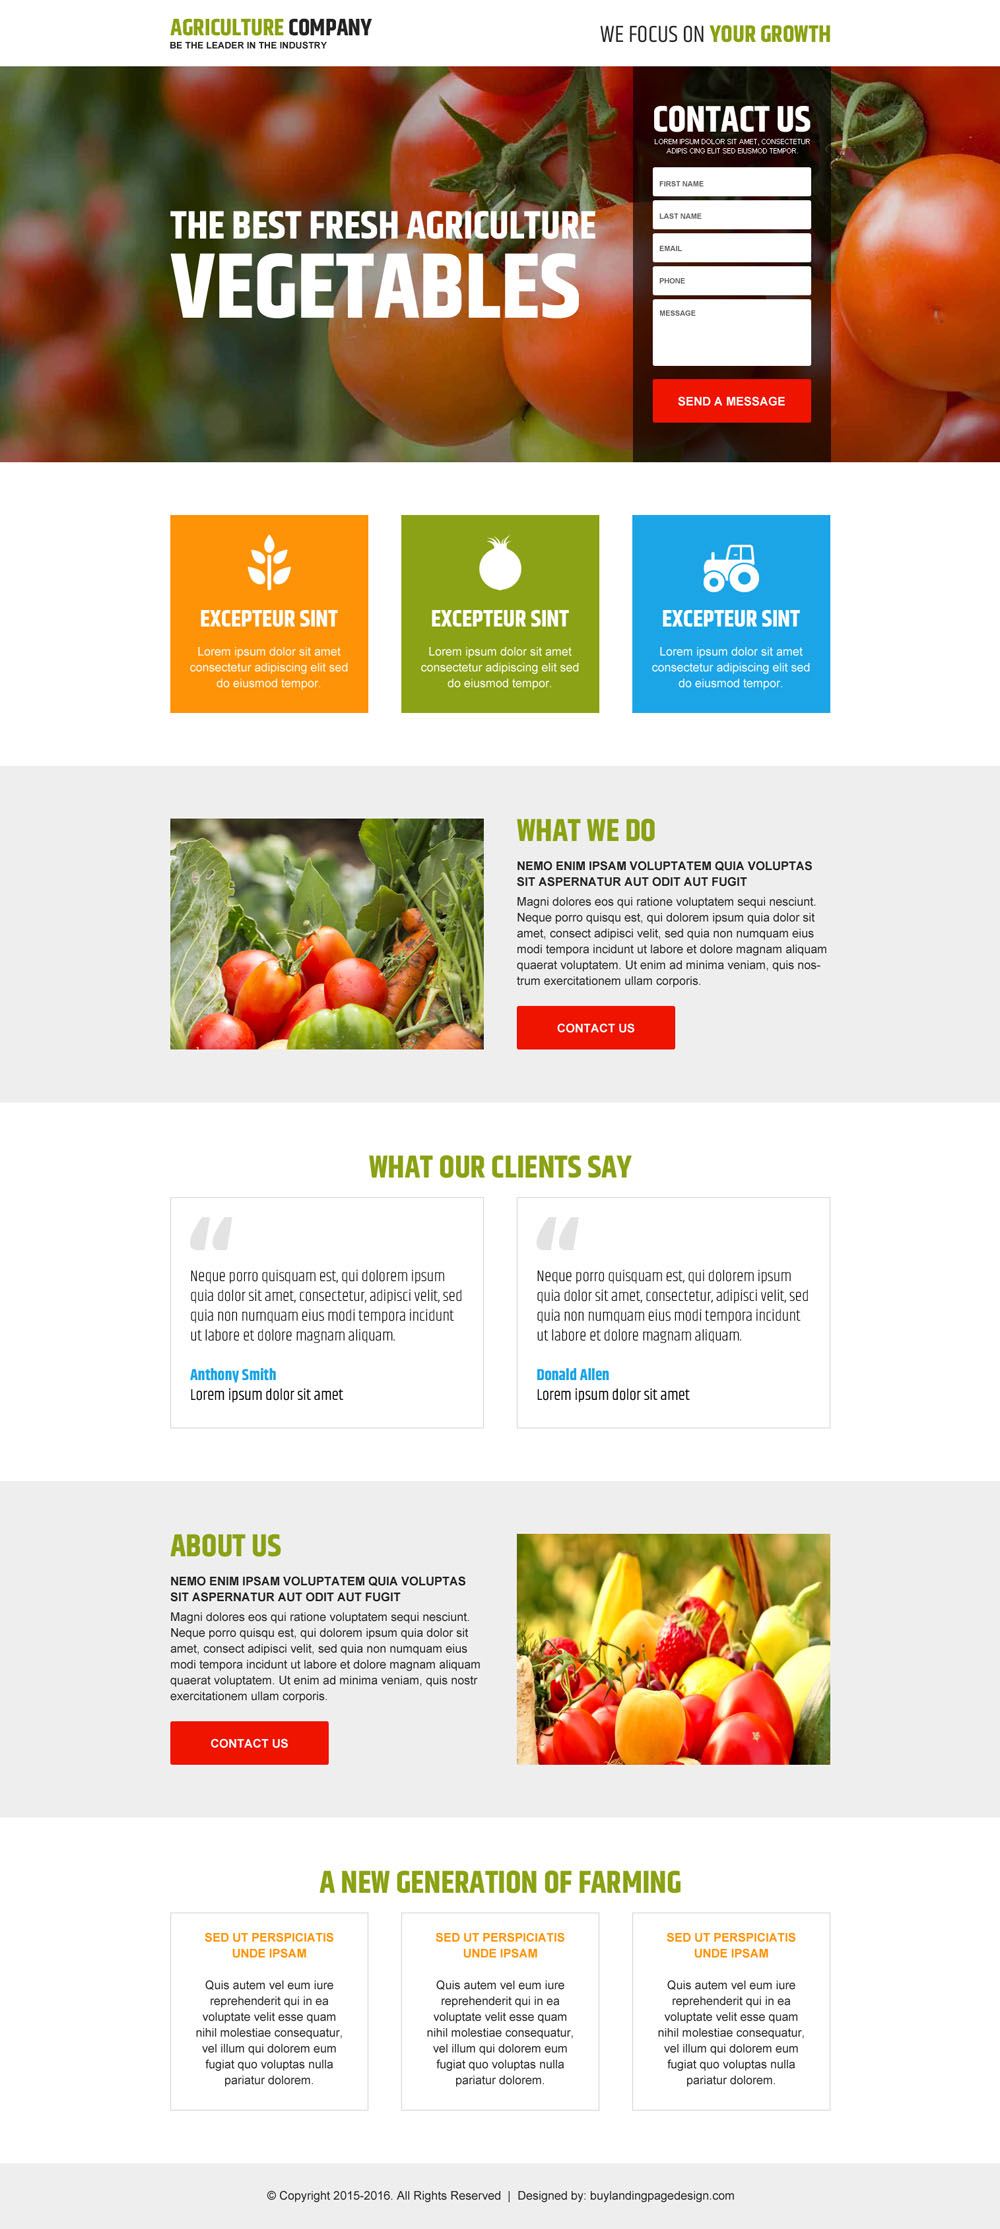 agriculture-company-for-best-fresh-vegetables-landing-page-design-002